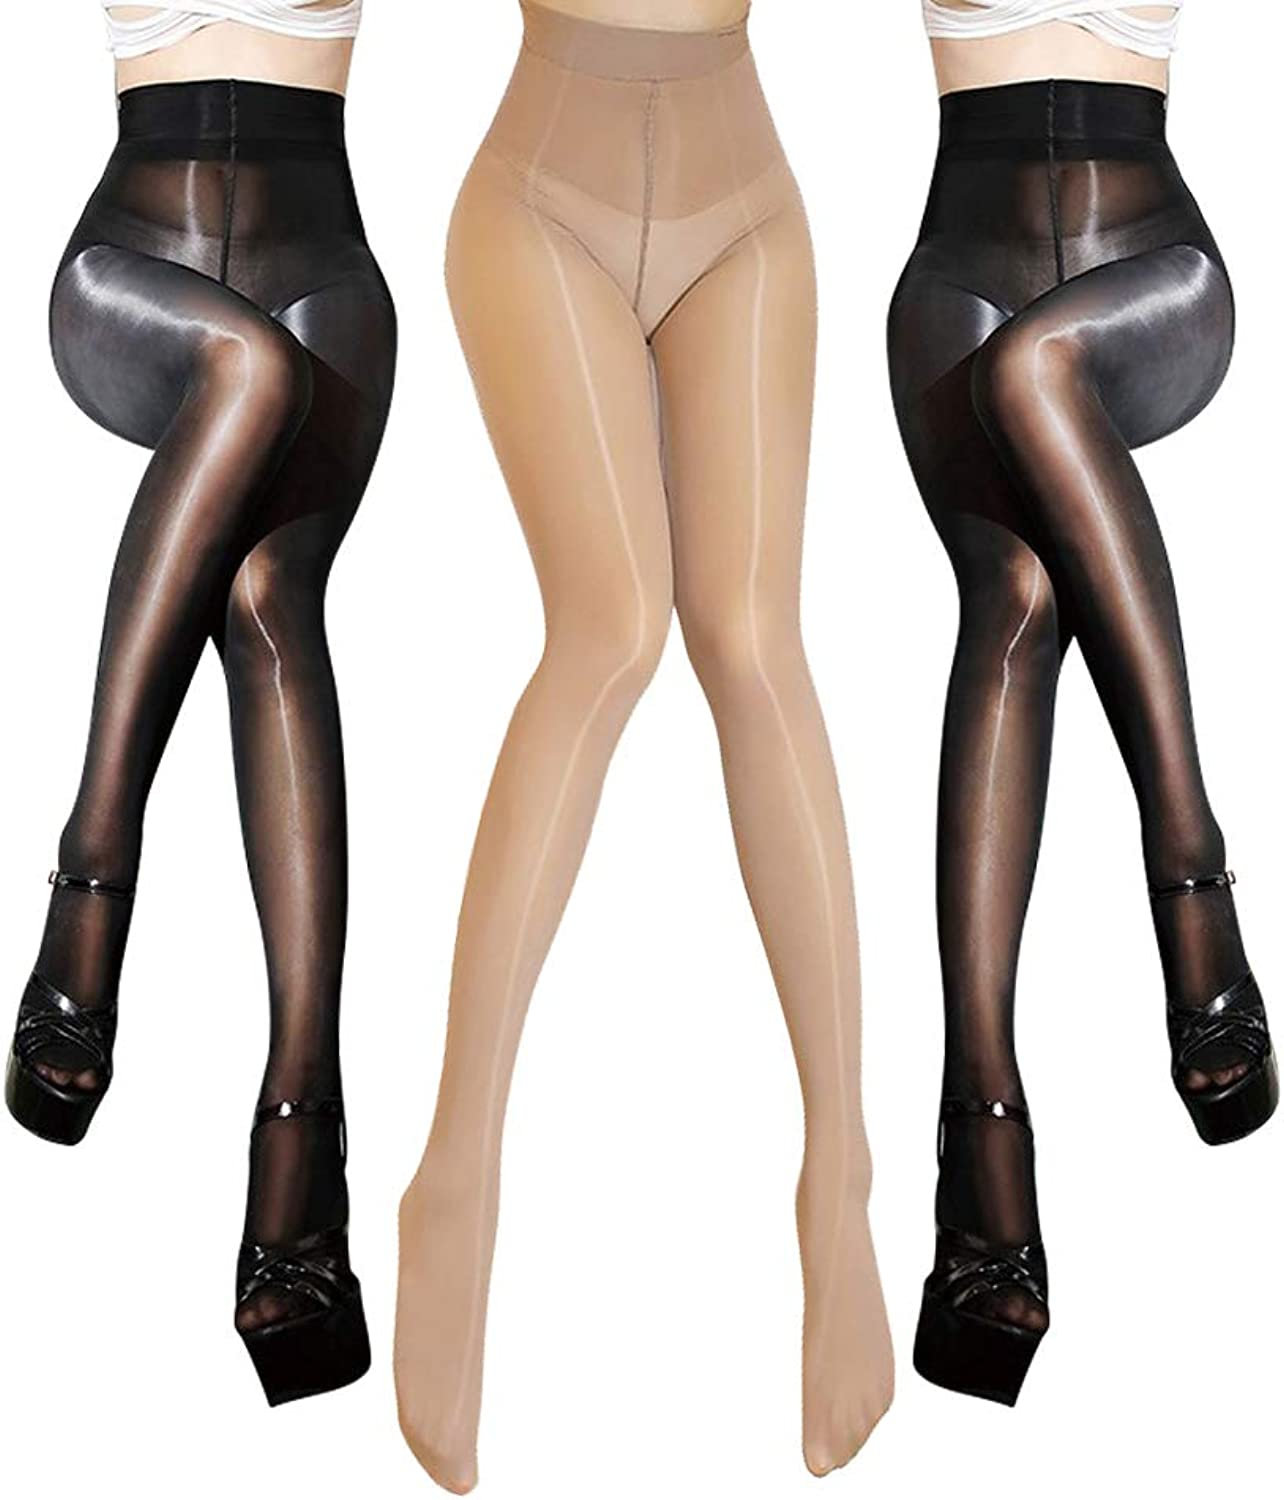 ElsaYX Women's 8D Pantyhose Control Top Stockings